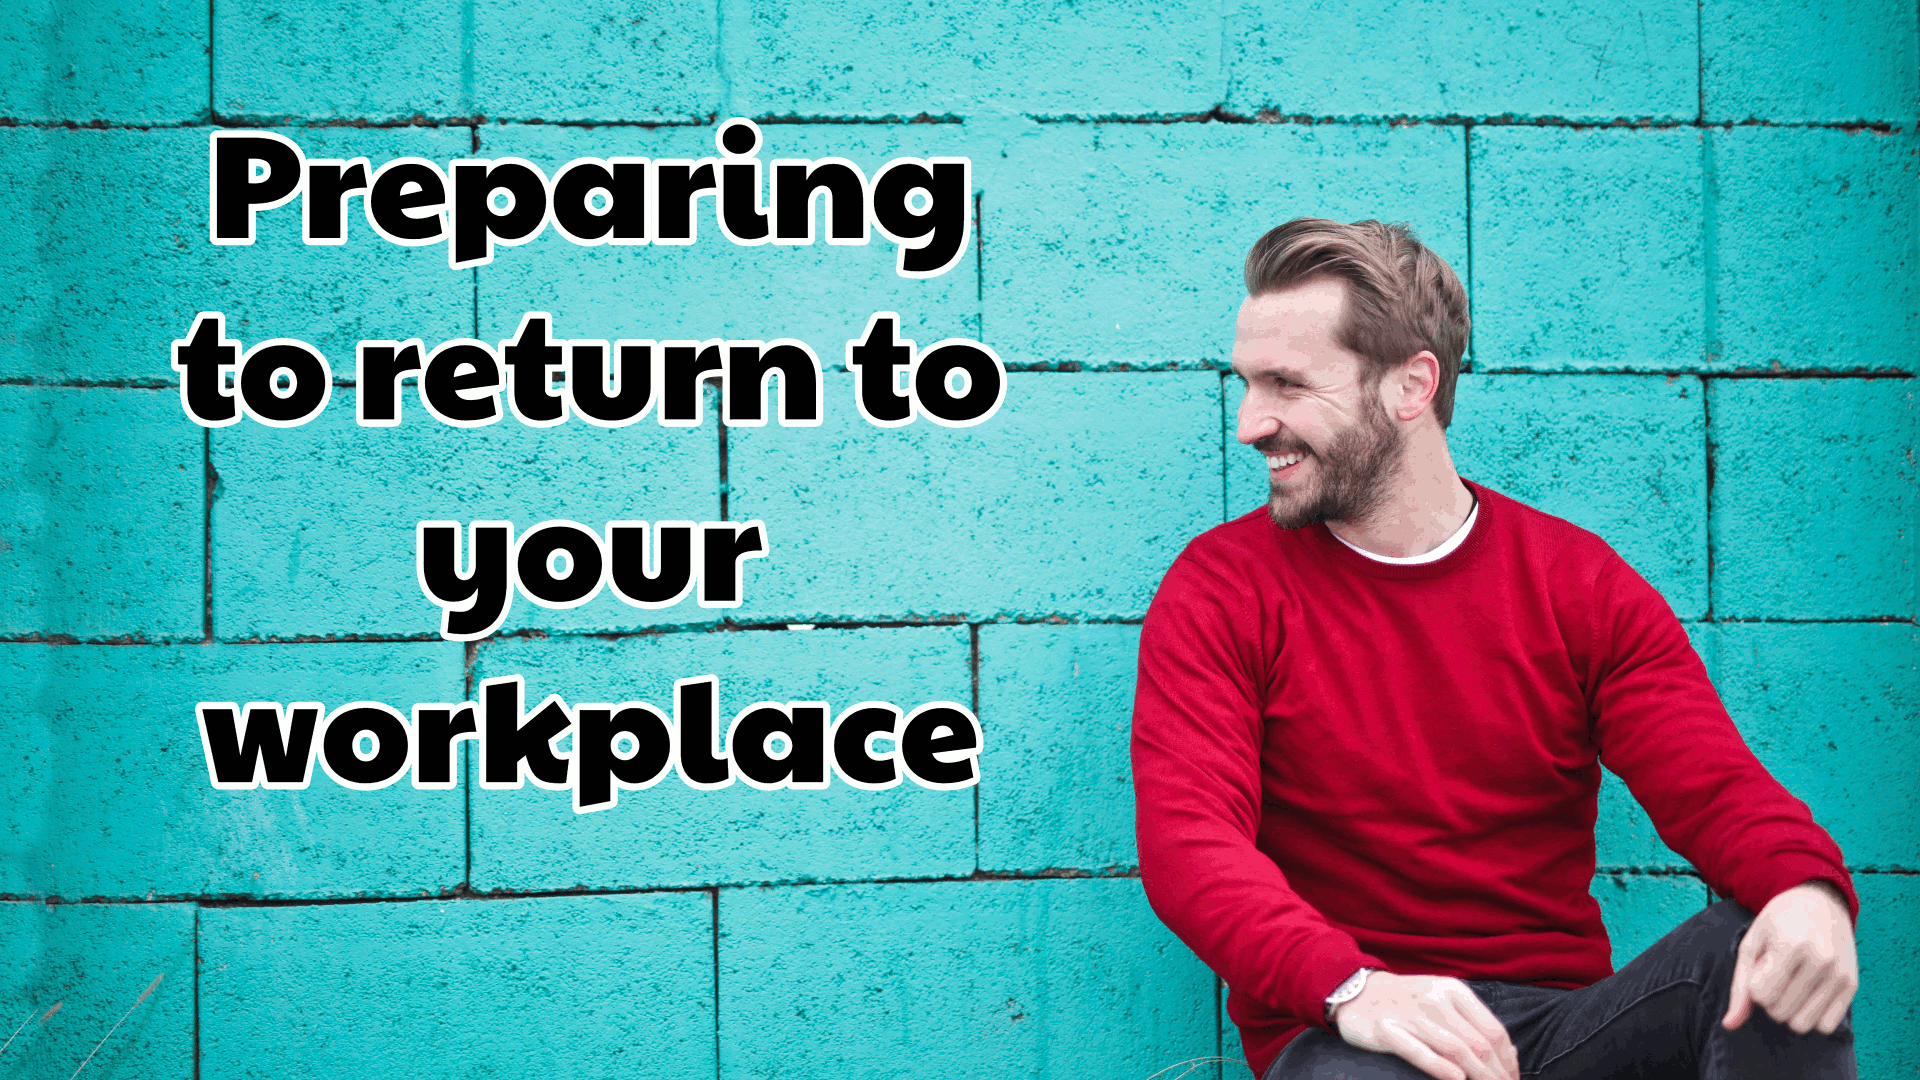 Preparing to return to your workplace